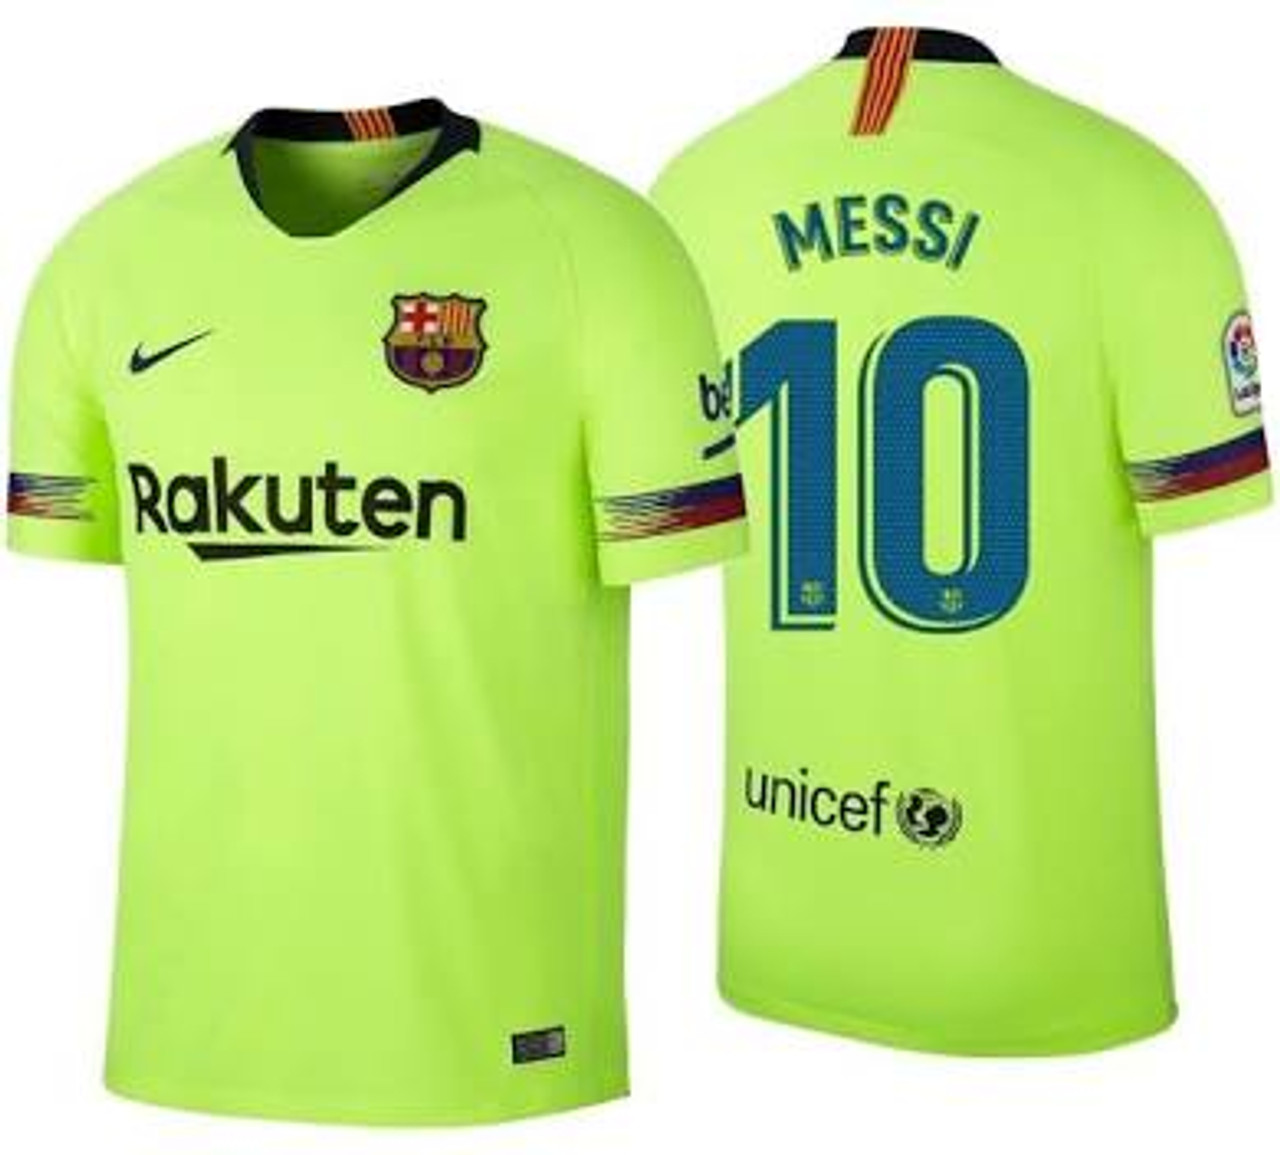 newest 5fbcc 2894e barcelona away jersey messi